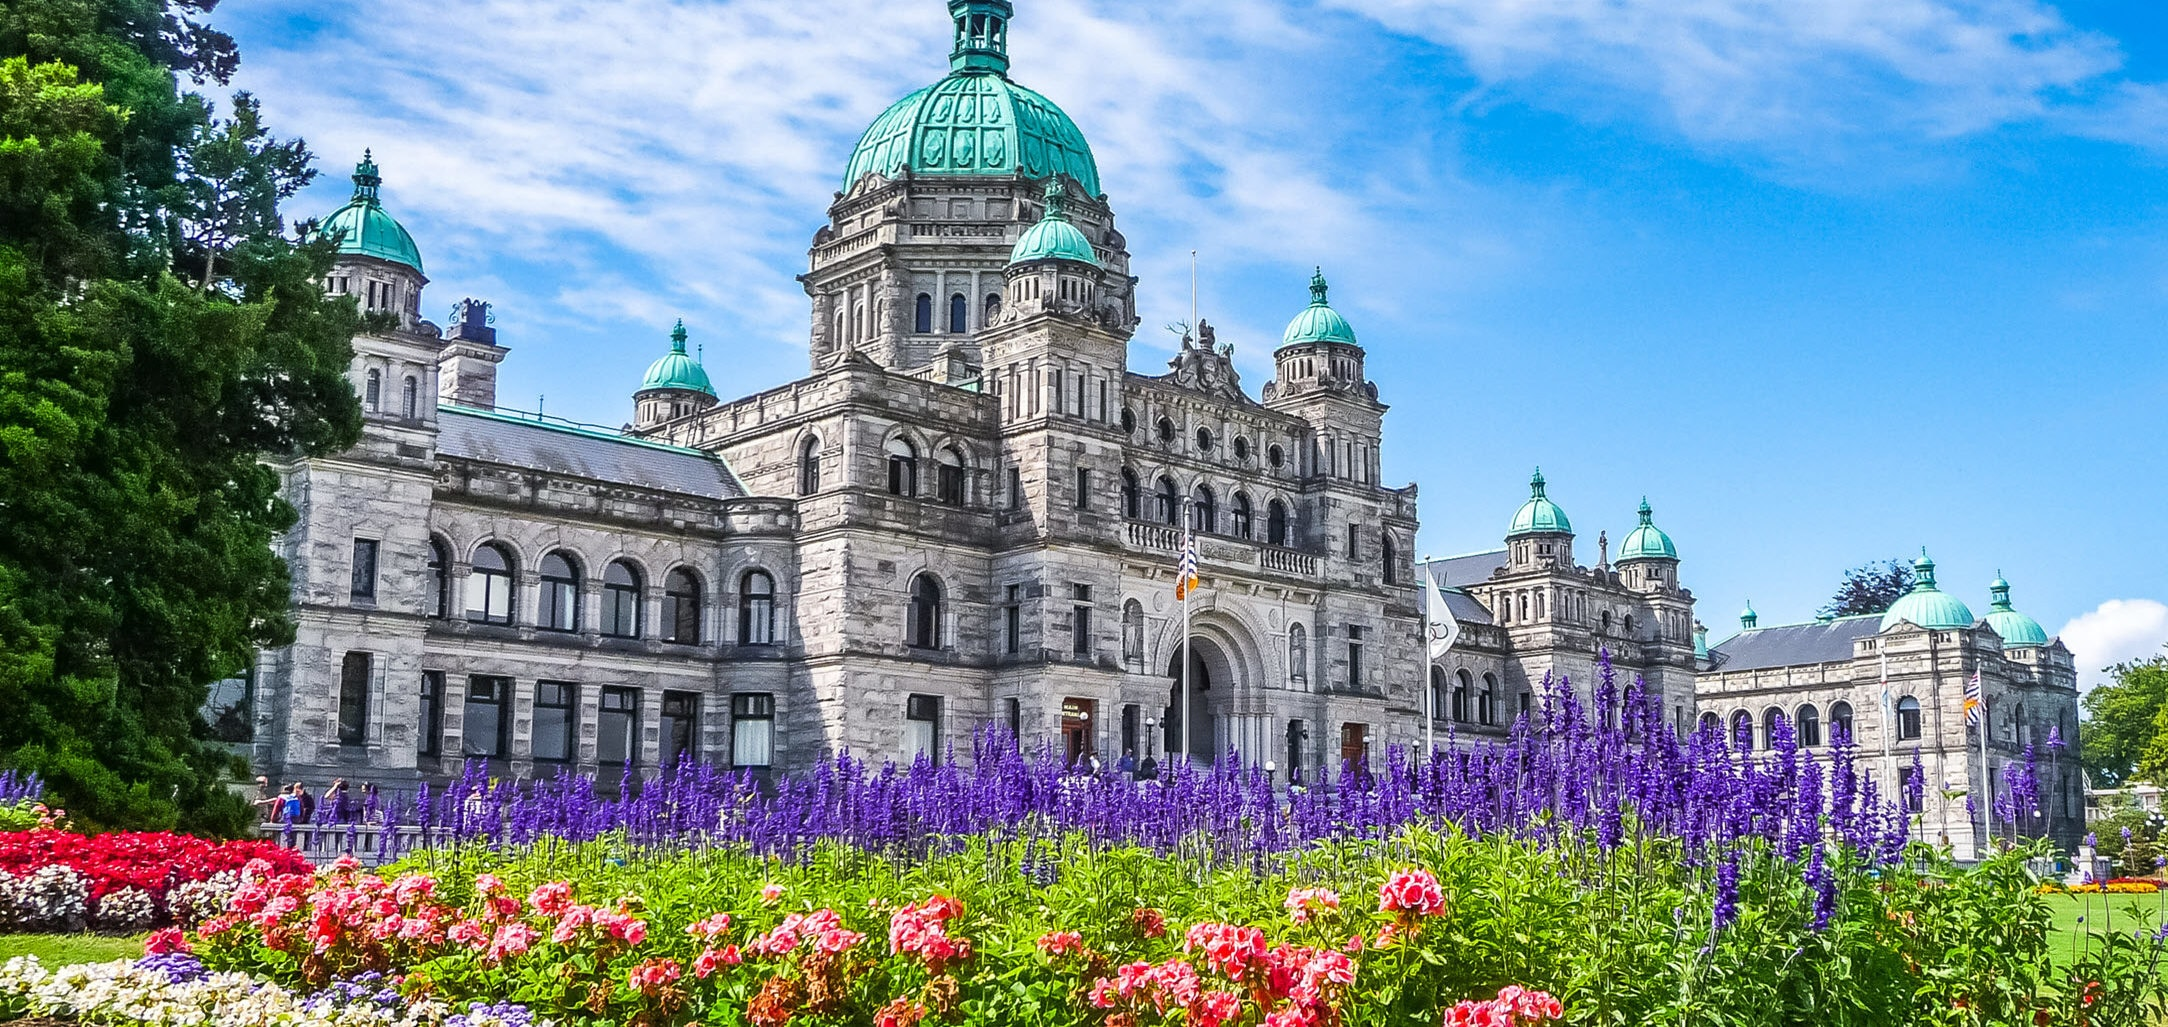 cropped-cropped-Victoria-British-Columbia-Parliament-Building-3.jpg